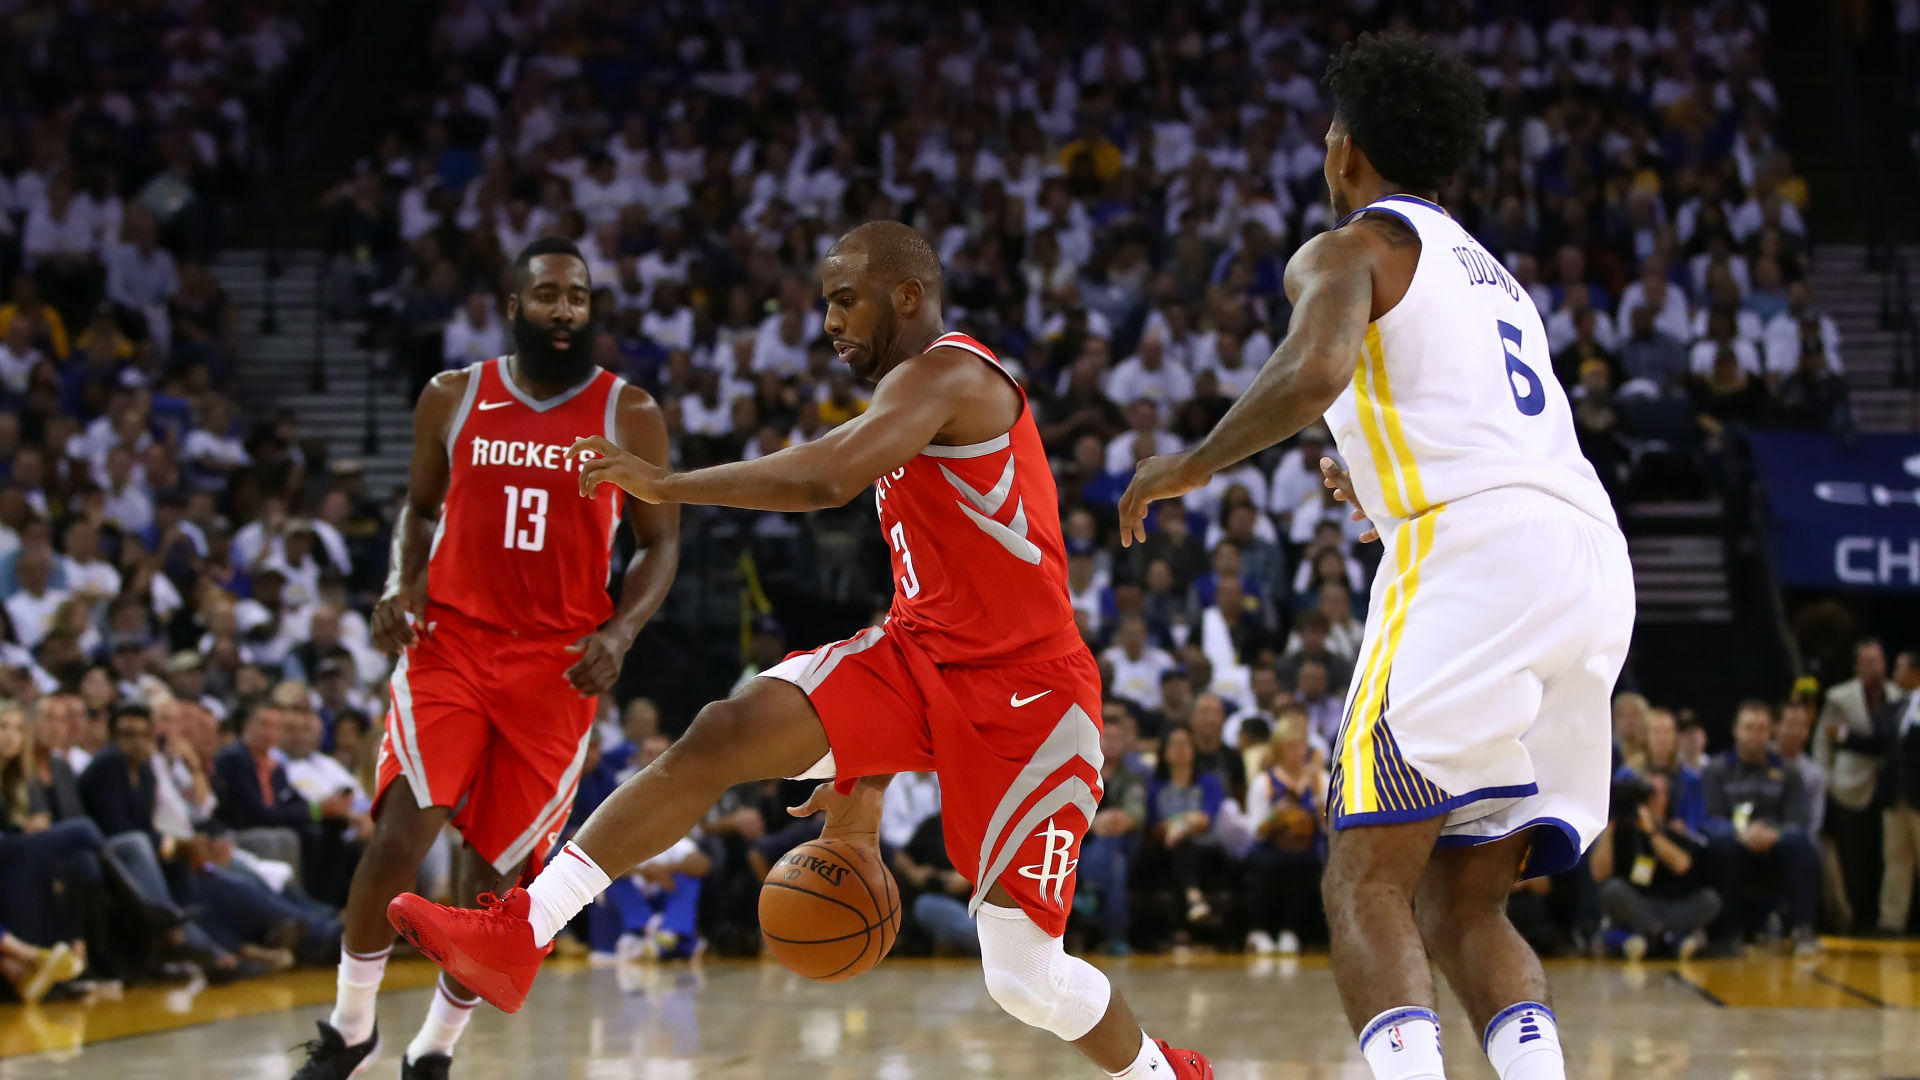 It's Warriors over Rockets - odds